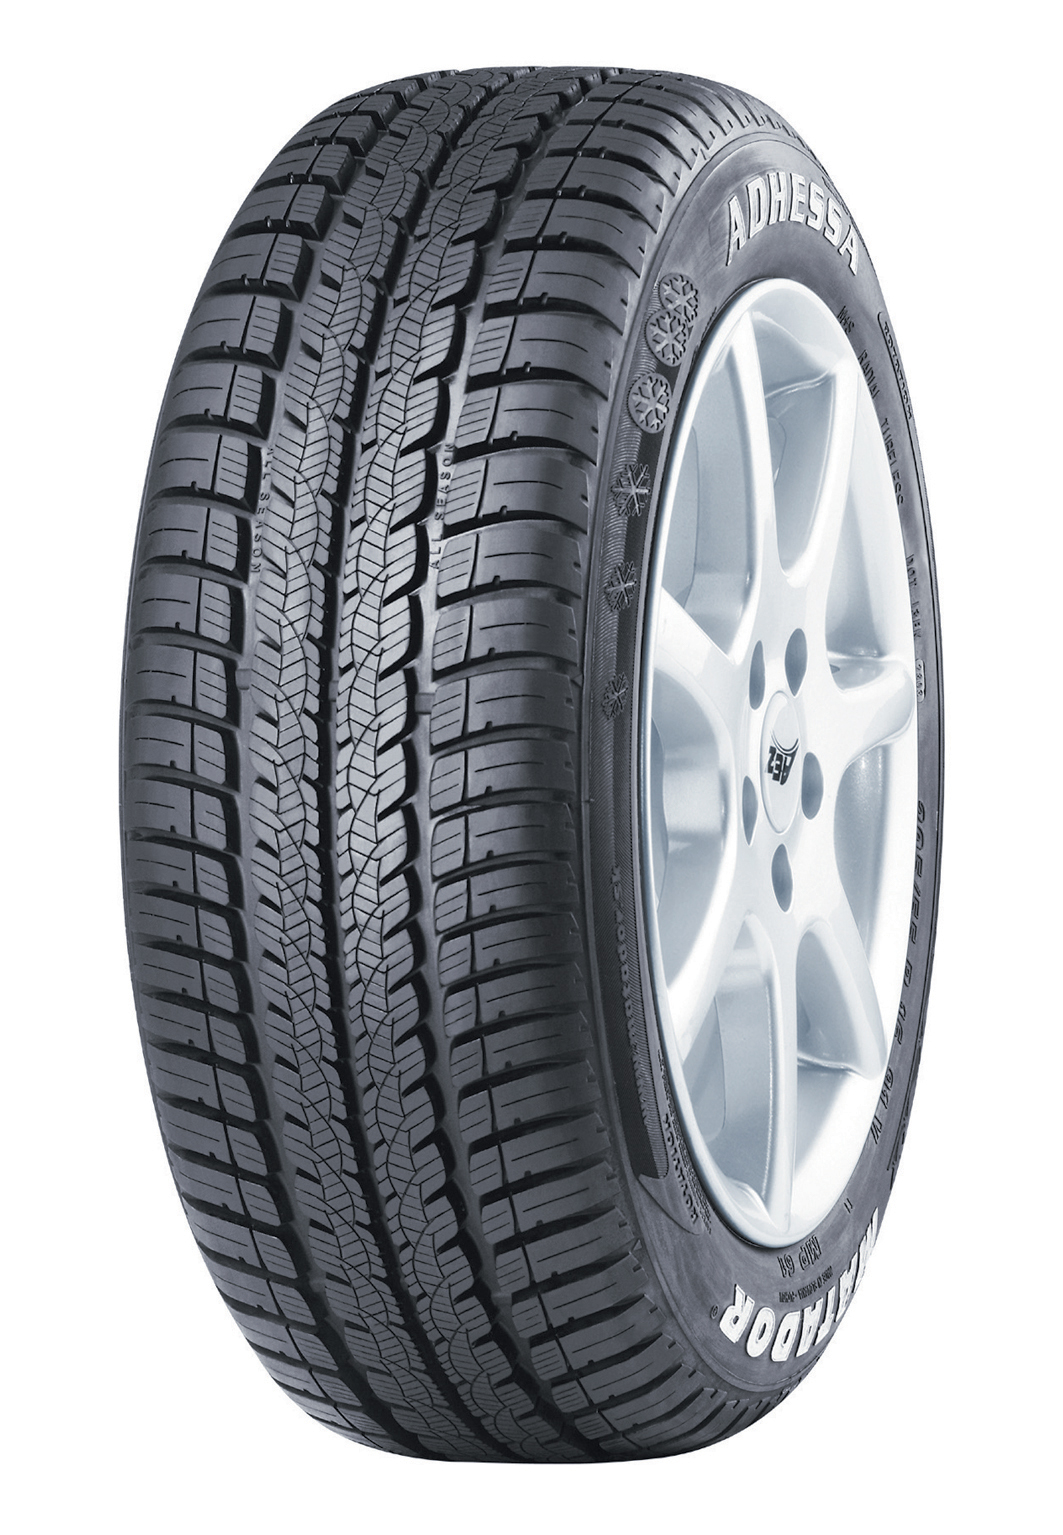 Anvelopa all seasons MATADOR mp 61 adhessa all season 185/60 R14 82H